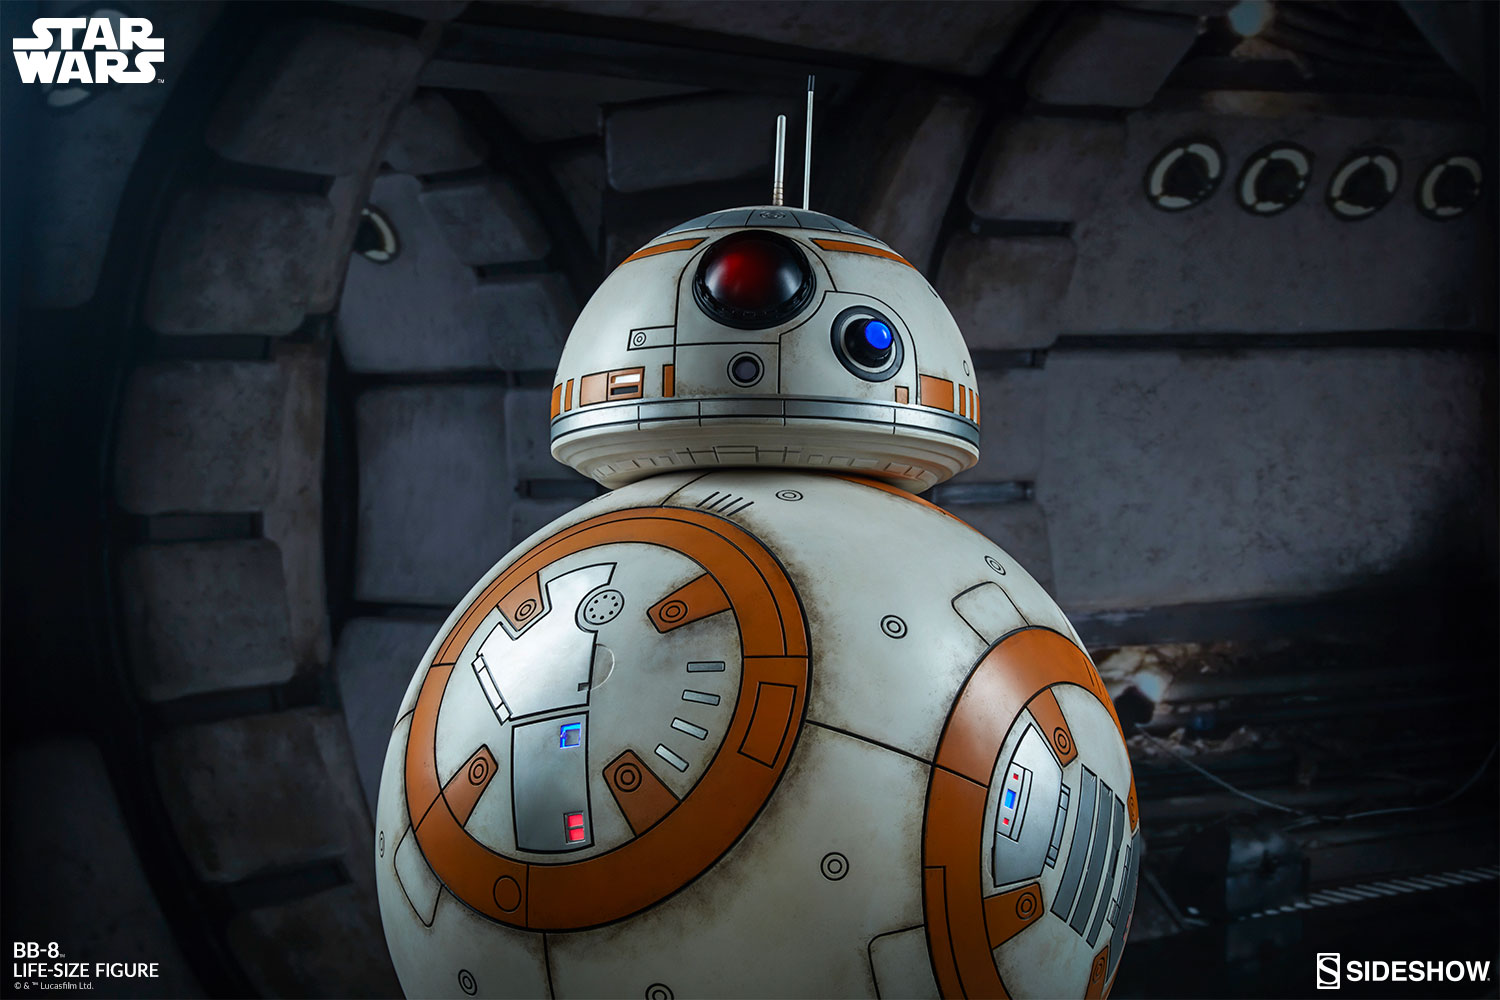 Star Wars Bb 8 Life Size Figure By Sideshow Collectibles Sideshow Collectibles